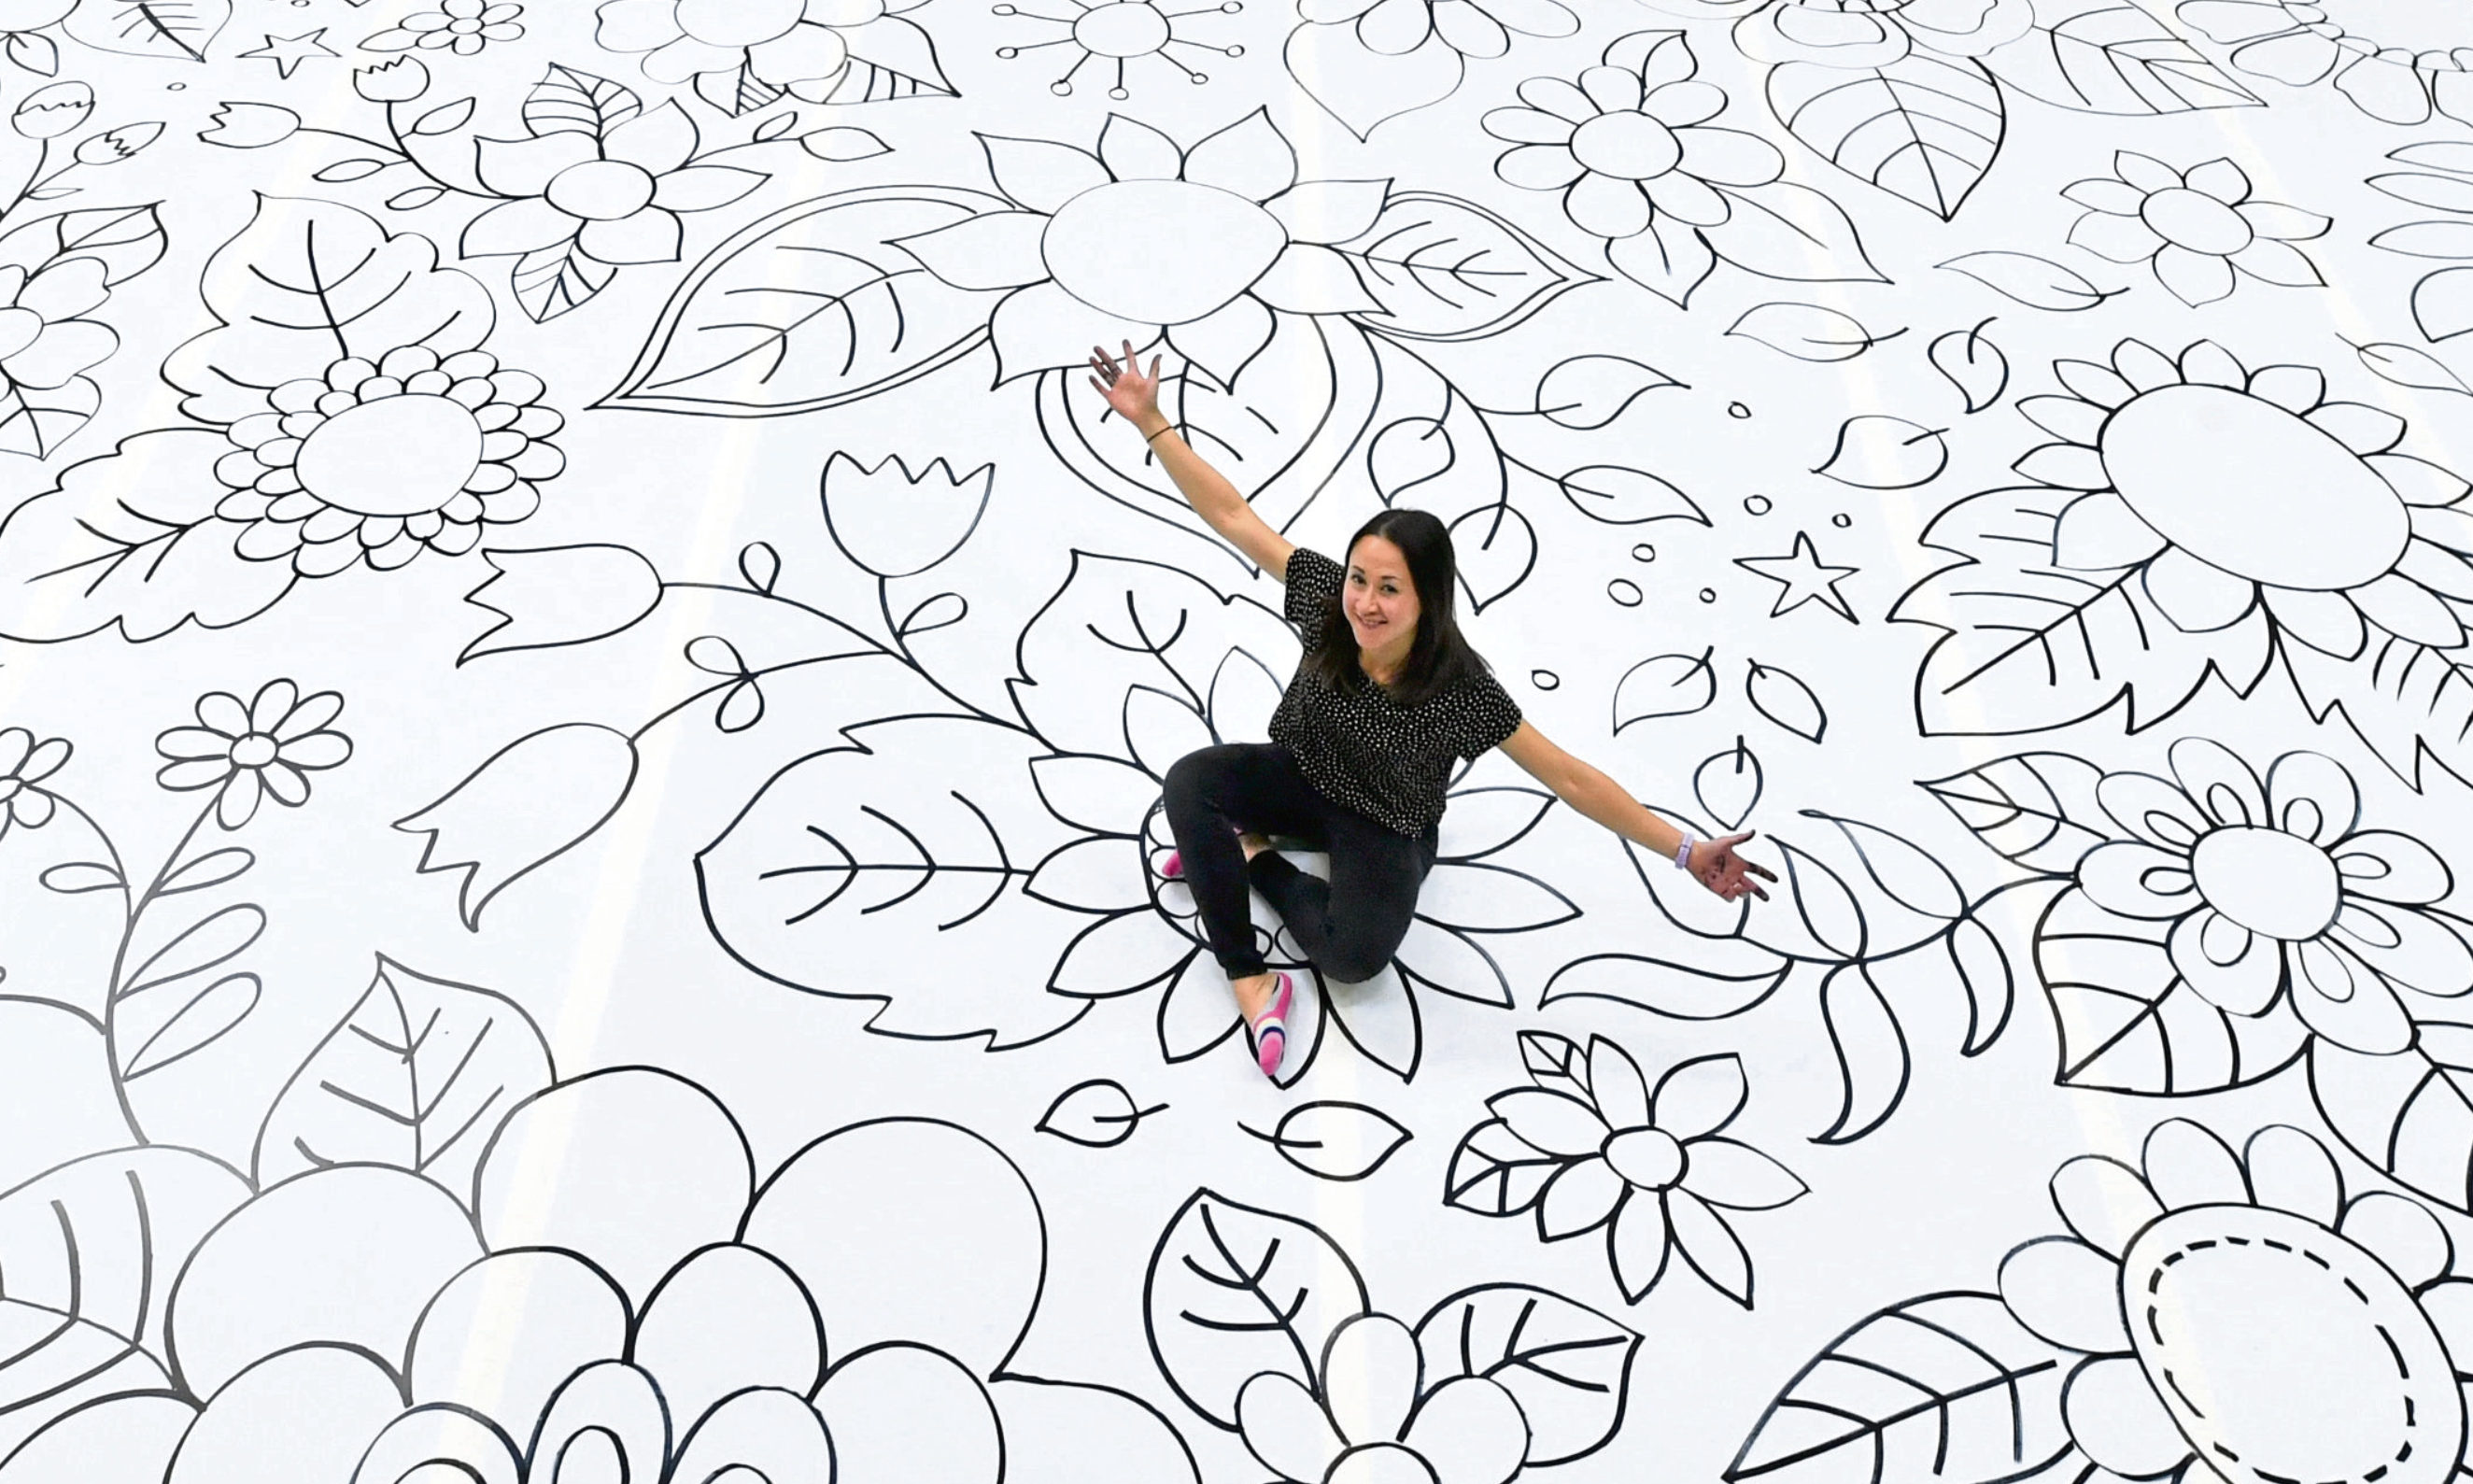 Bestselling illustrator Johanna Basford OBE with the mammoth floral artwork.